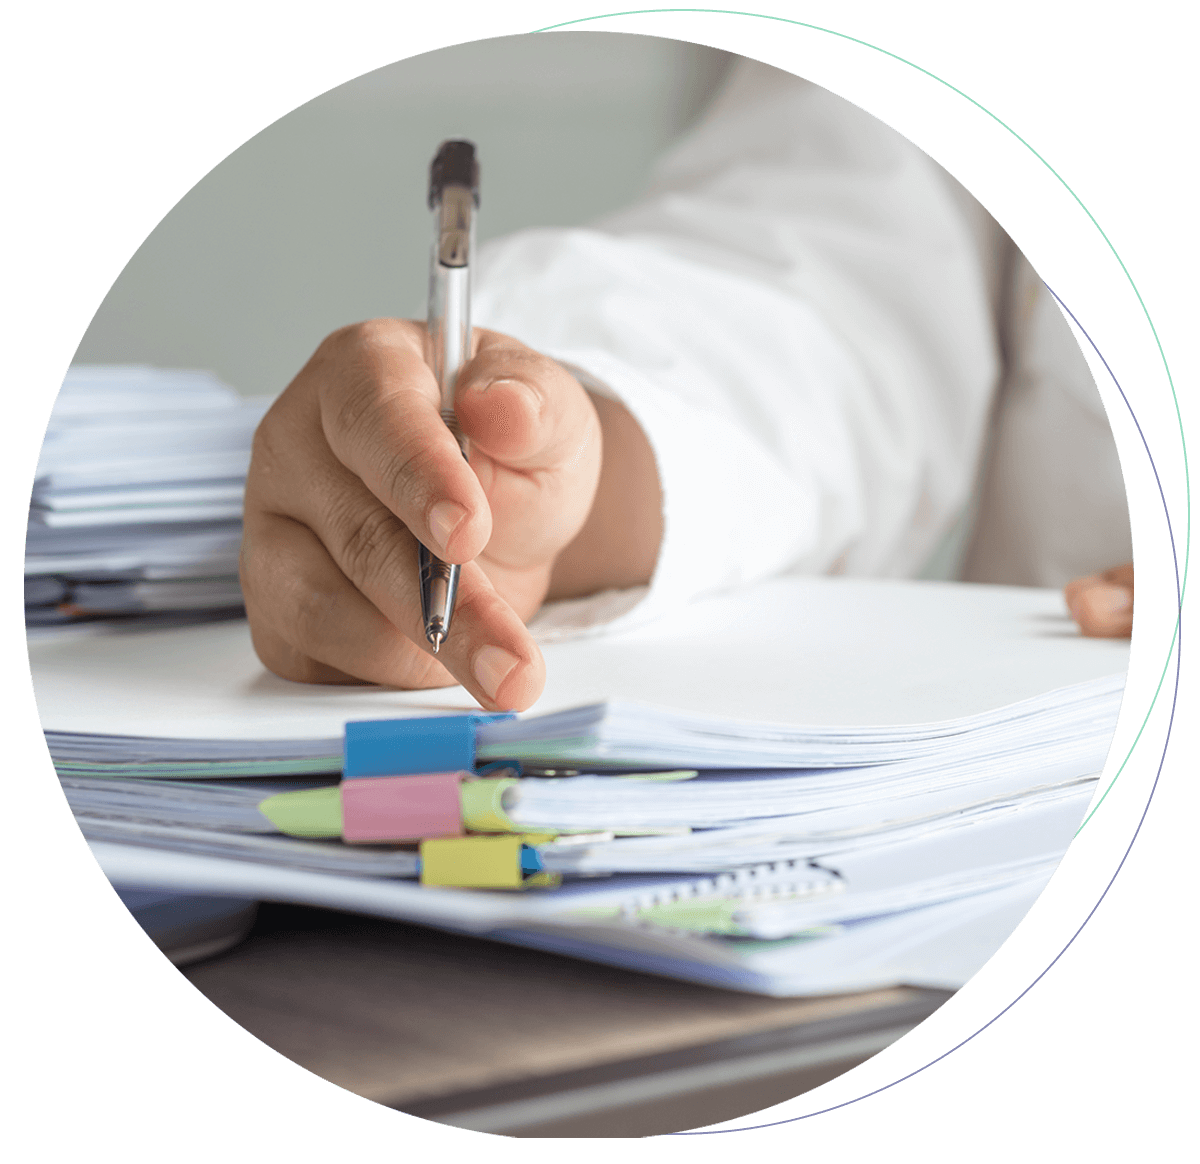 Person completing forms which could be done by Robotic Process Automation